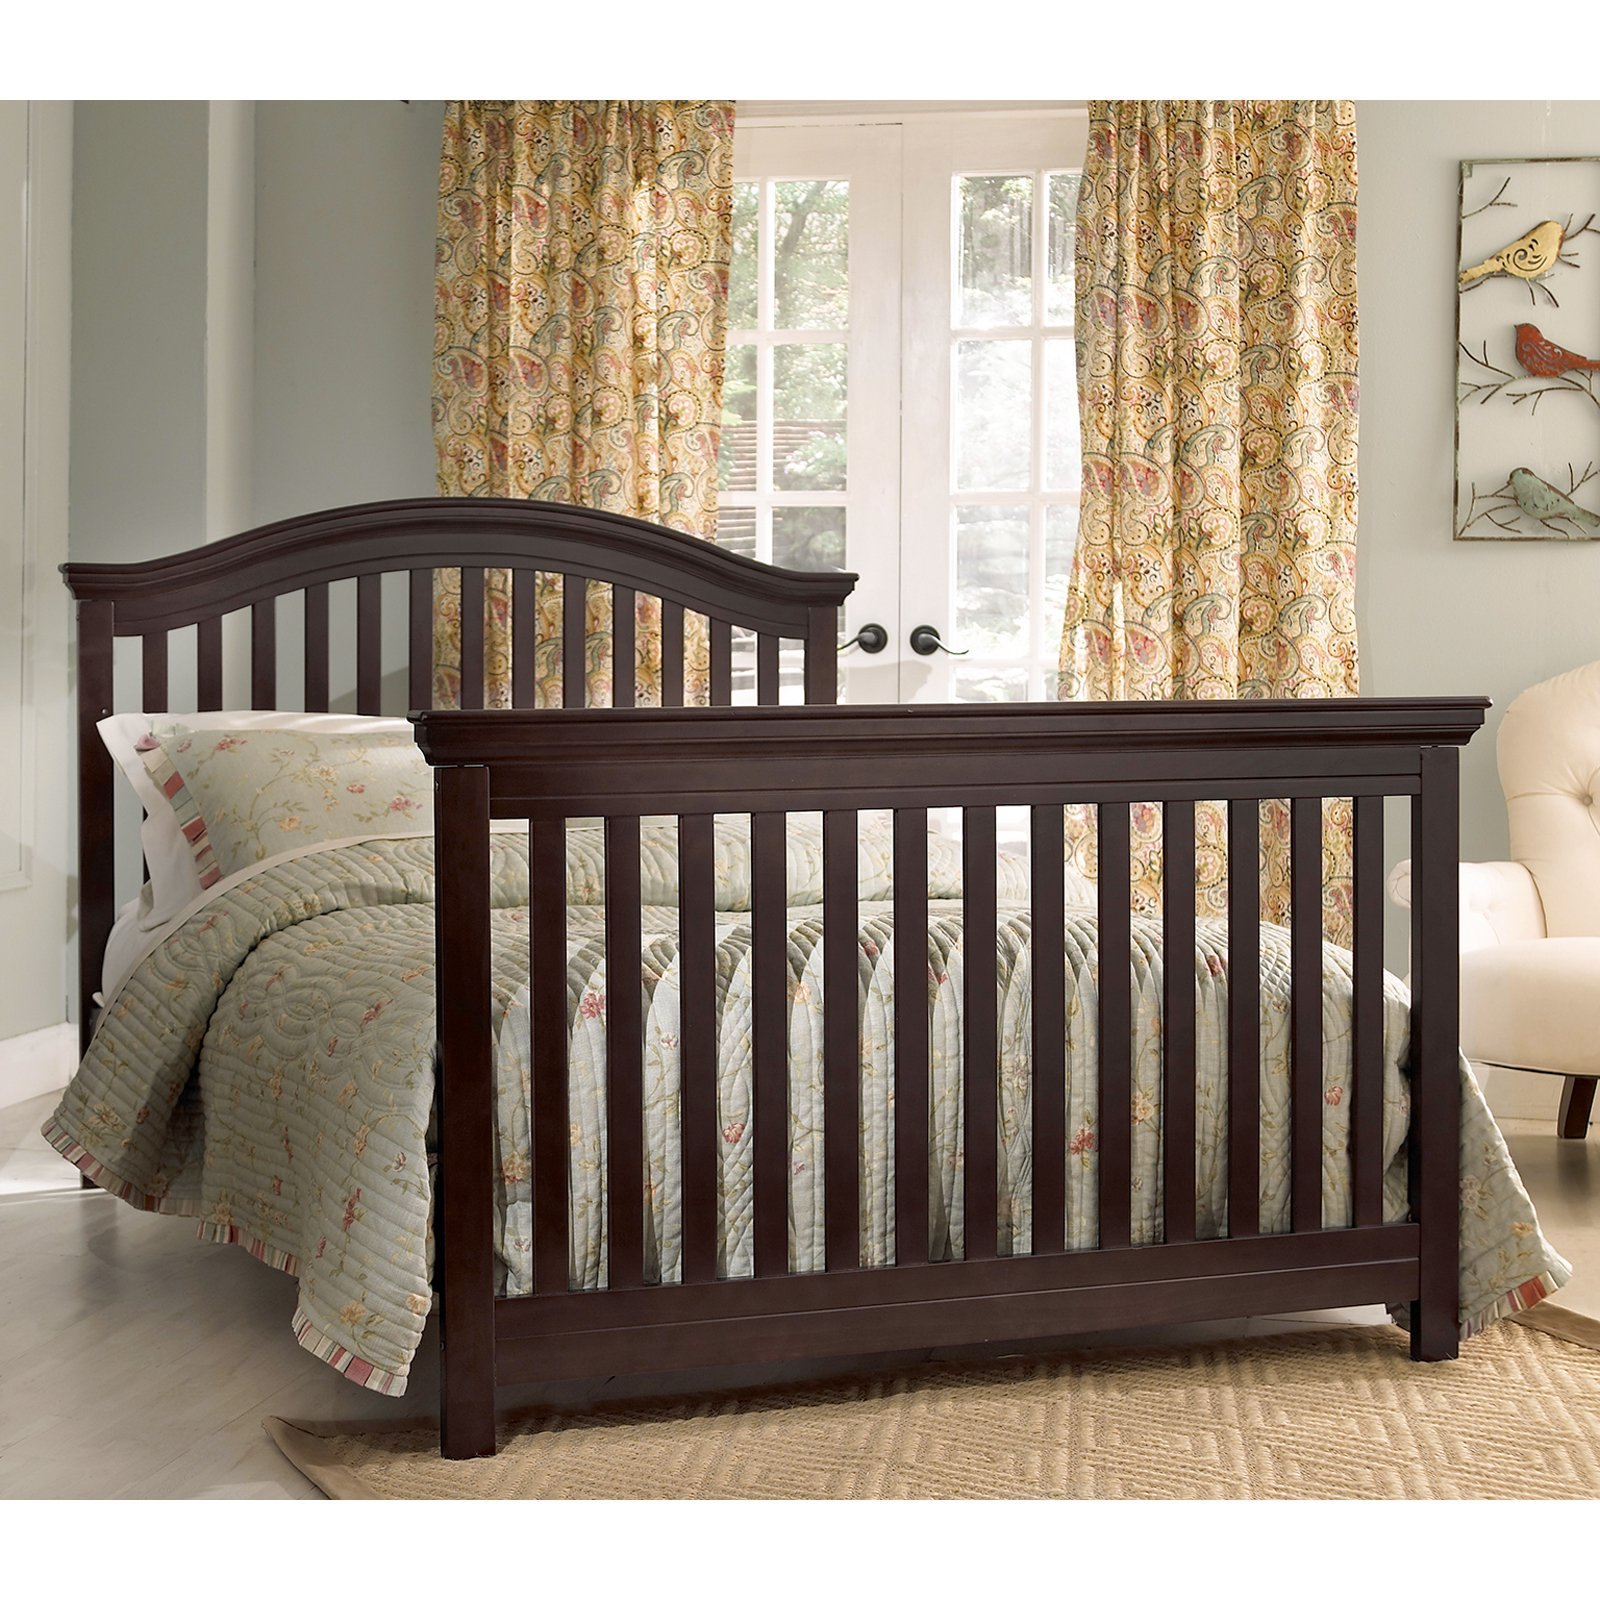 large munire crib in dark brown on wheat ceramics floor plus tan carpet matched with olive wall for kids room ideas